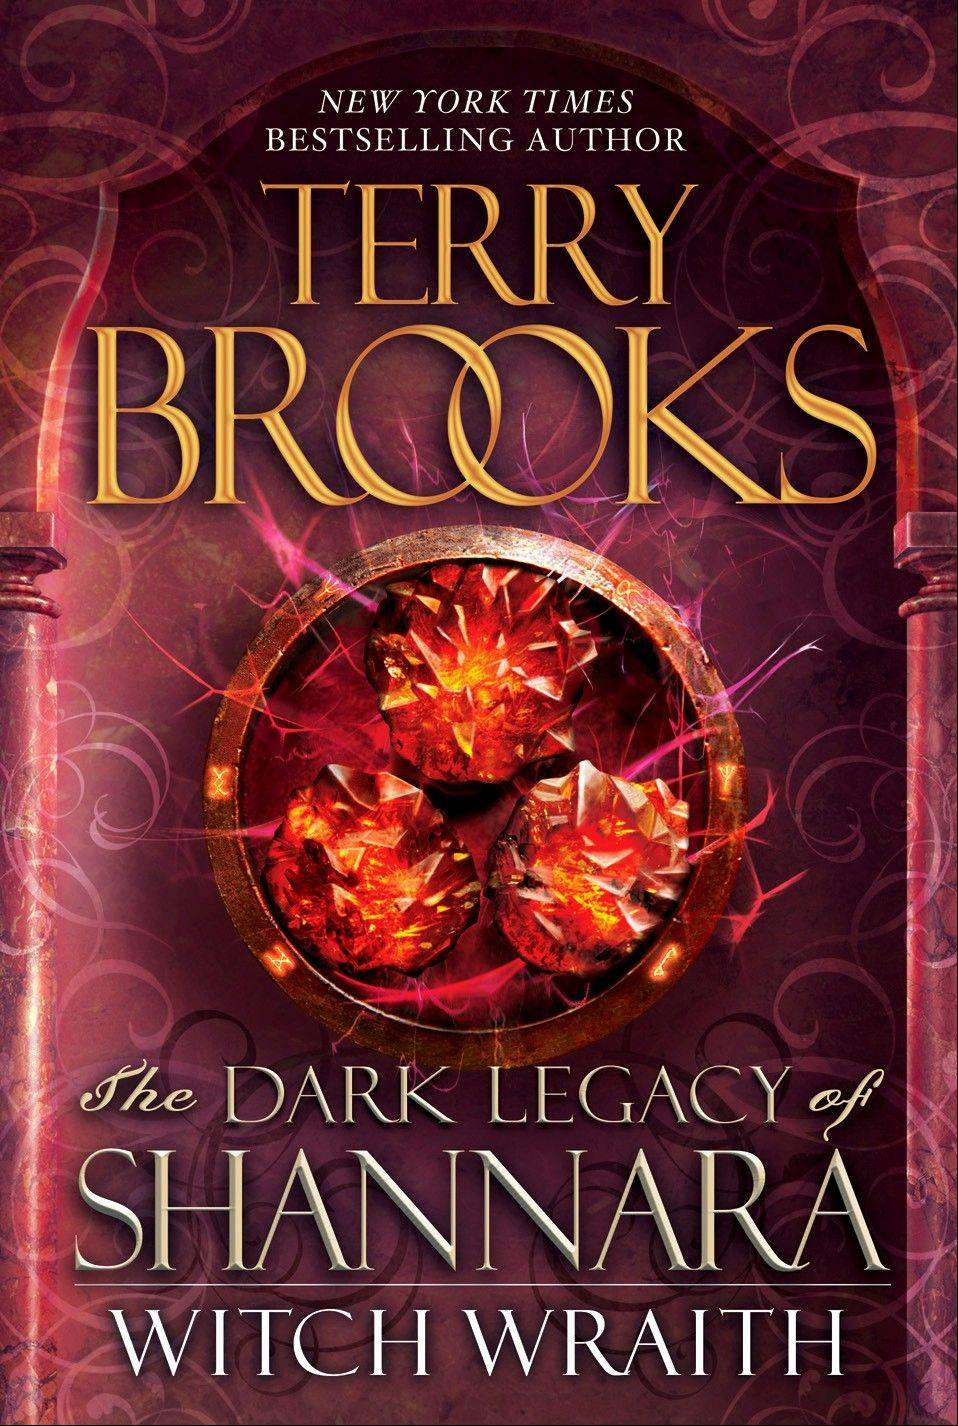 �Witch Wraith: The Dark Legacy of Shannara� by Terry Brooks